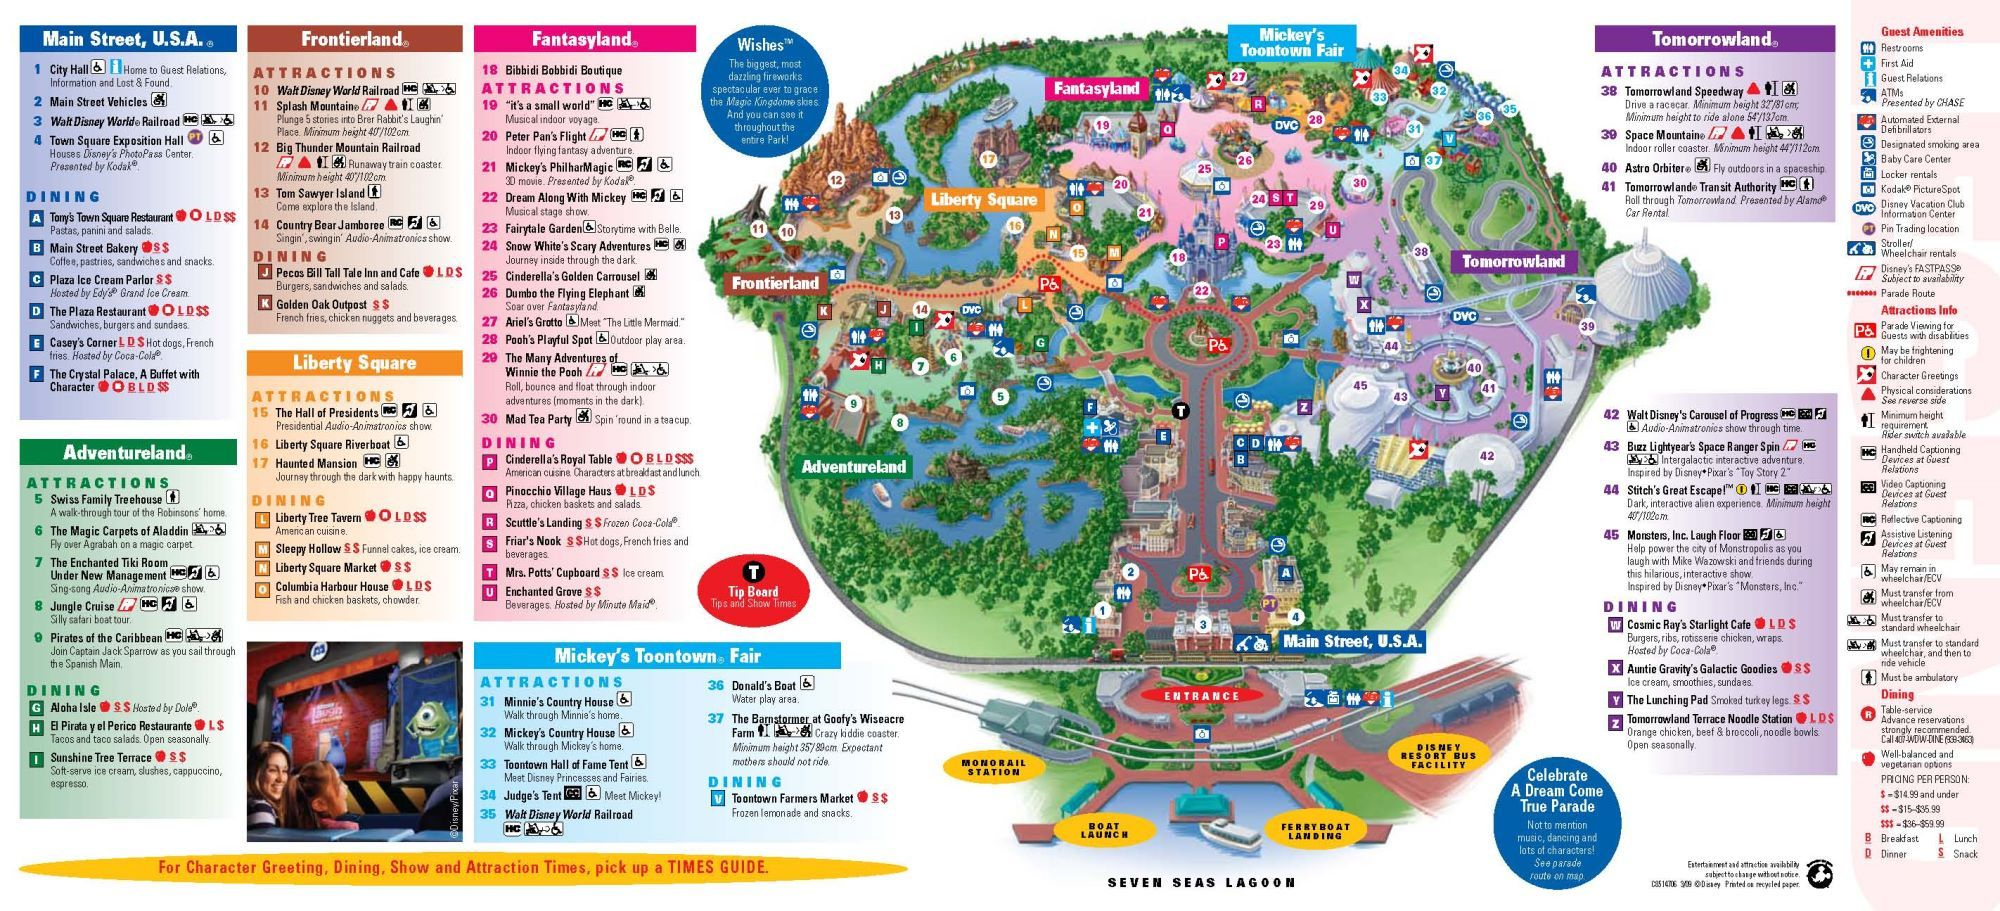 Magic Kingdom Downloadable Map |  À Magic Kingdom À Walt Disney - Magic Kingdom Orlando Florida Map